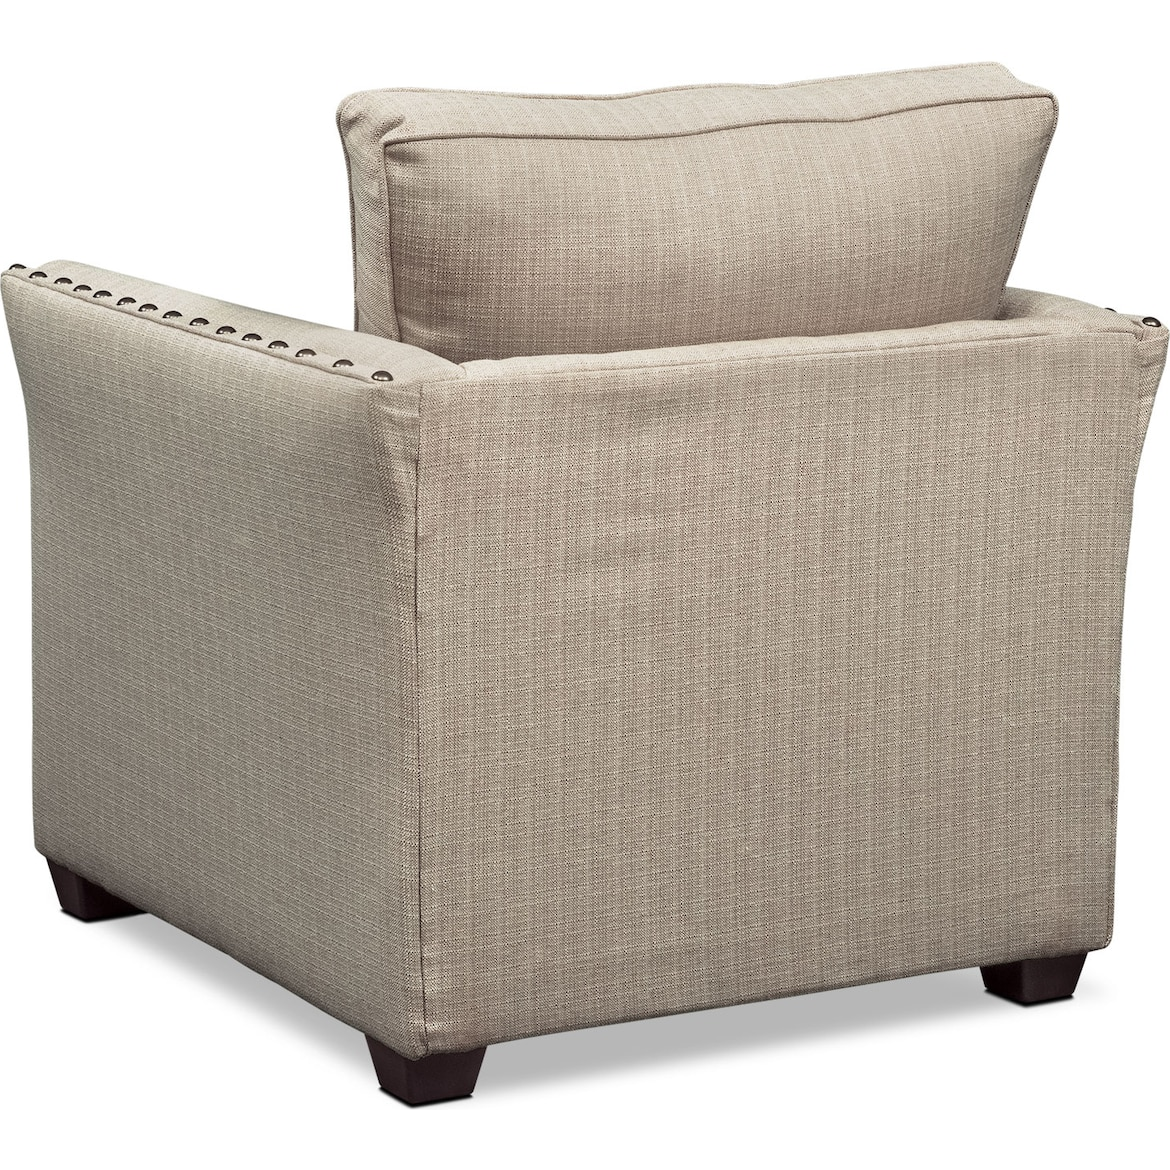 Mckenna Chair Value City Furniture And Mattresses